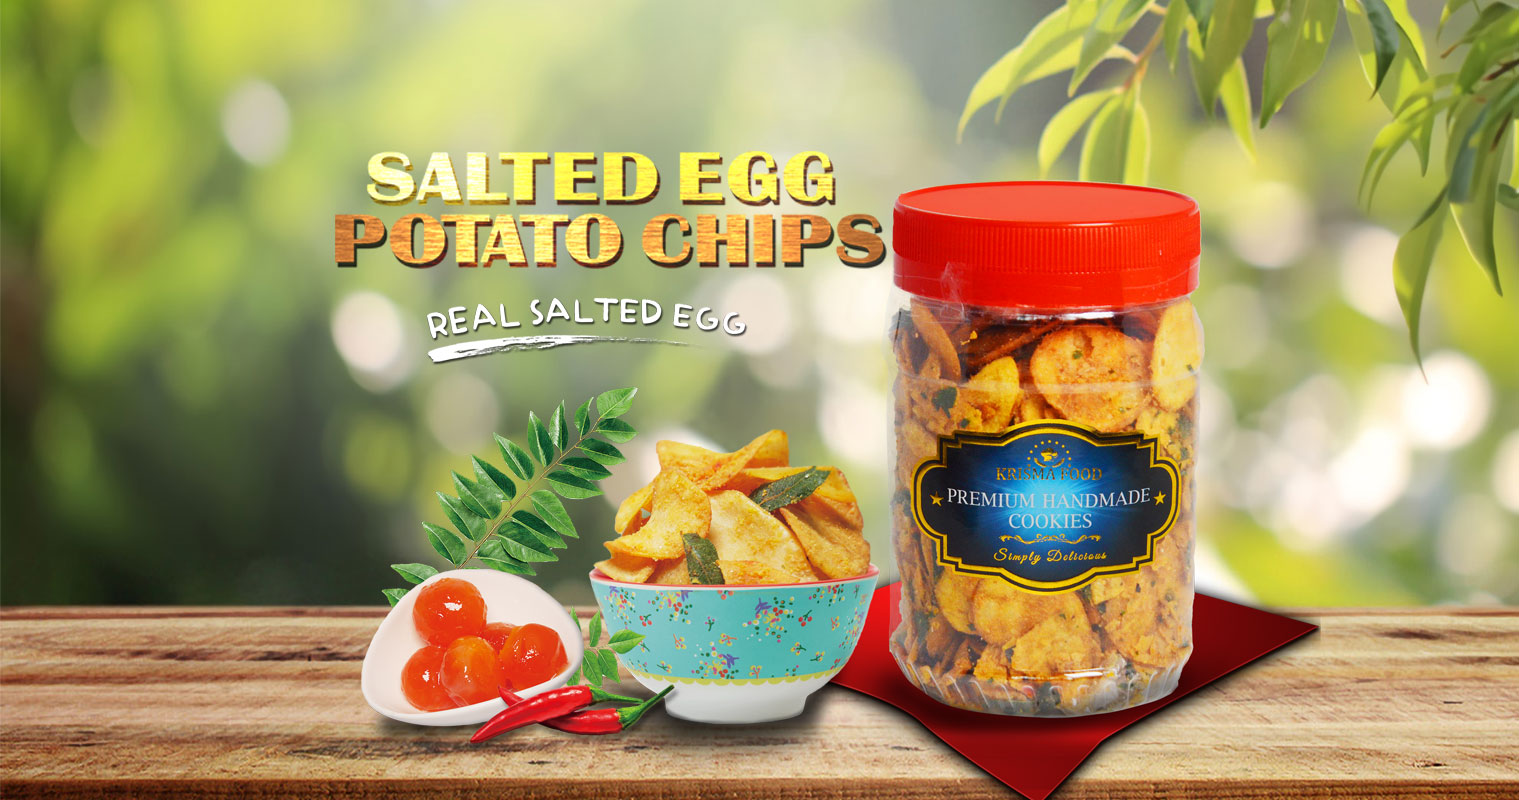 Salted Egg Potato Chips Krisma Food